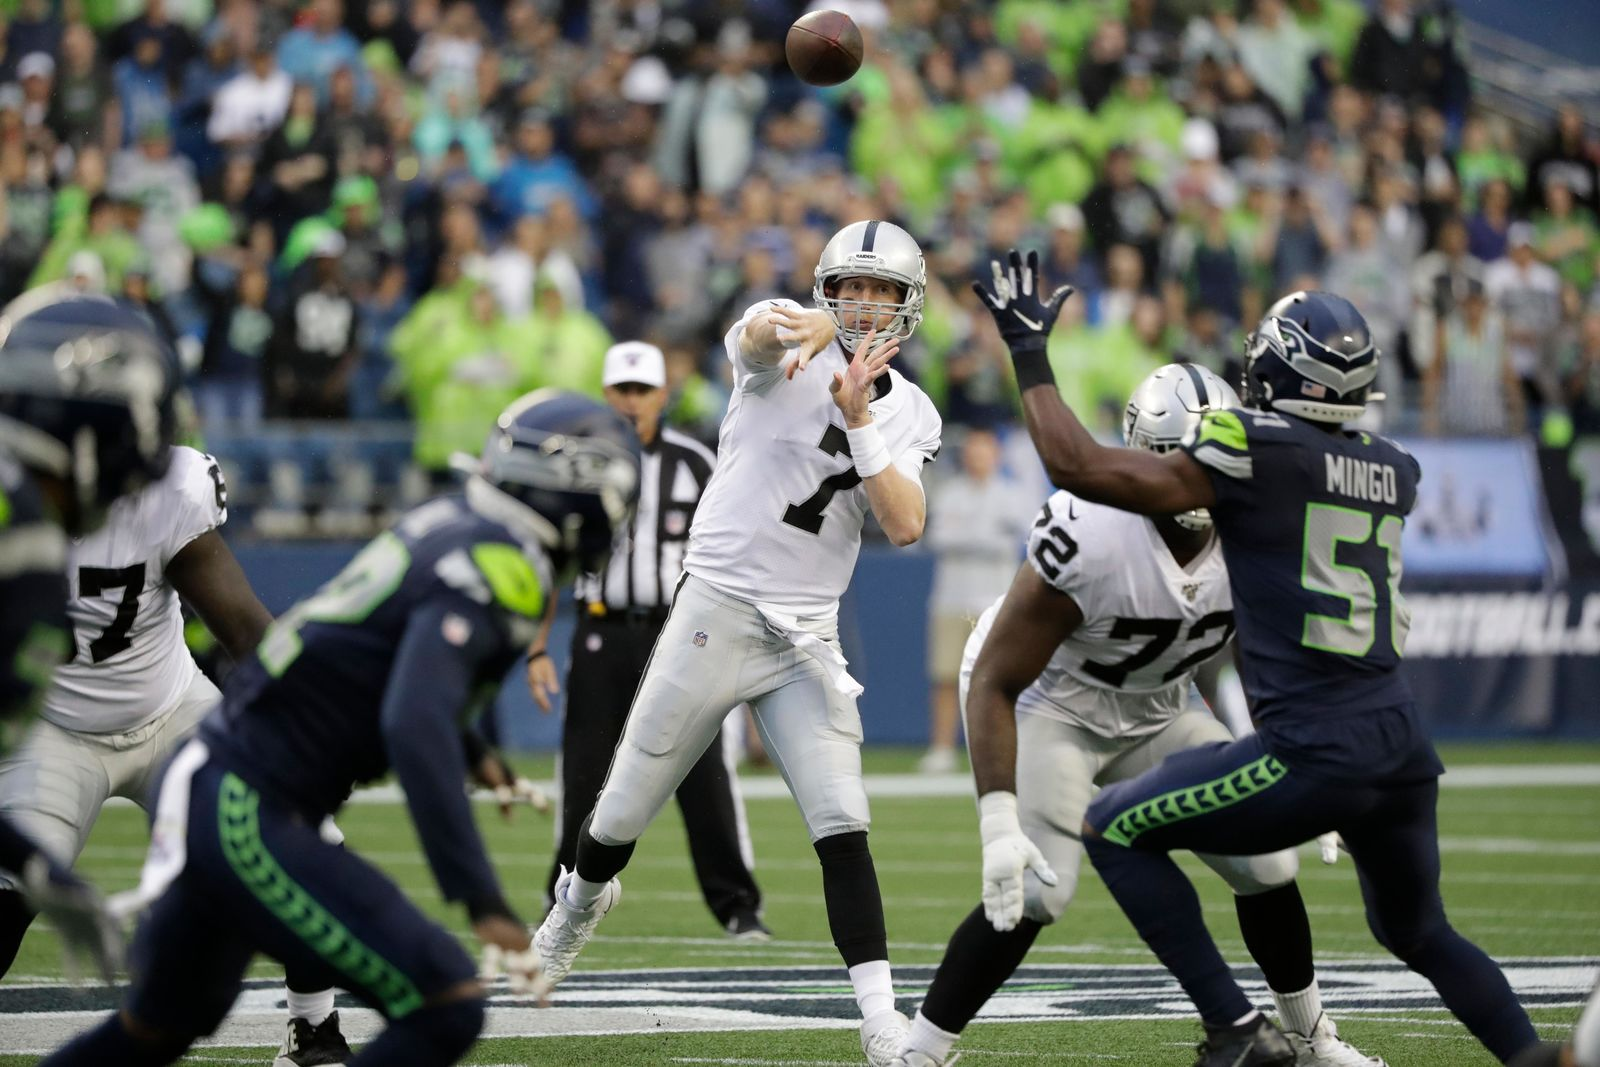 Oakland Raiders quarterback Mike Glennon (7) passes against the Seattle Seahawks during the first half of an NFL football preseason game Thursday, Aug. 29, 2019, in Seattle. (AP Photo/Elaine Thompson)